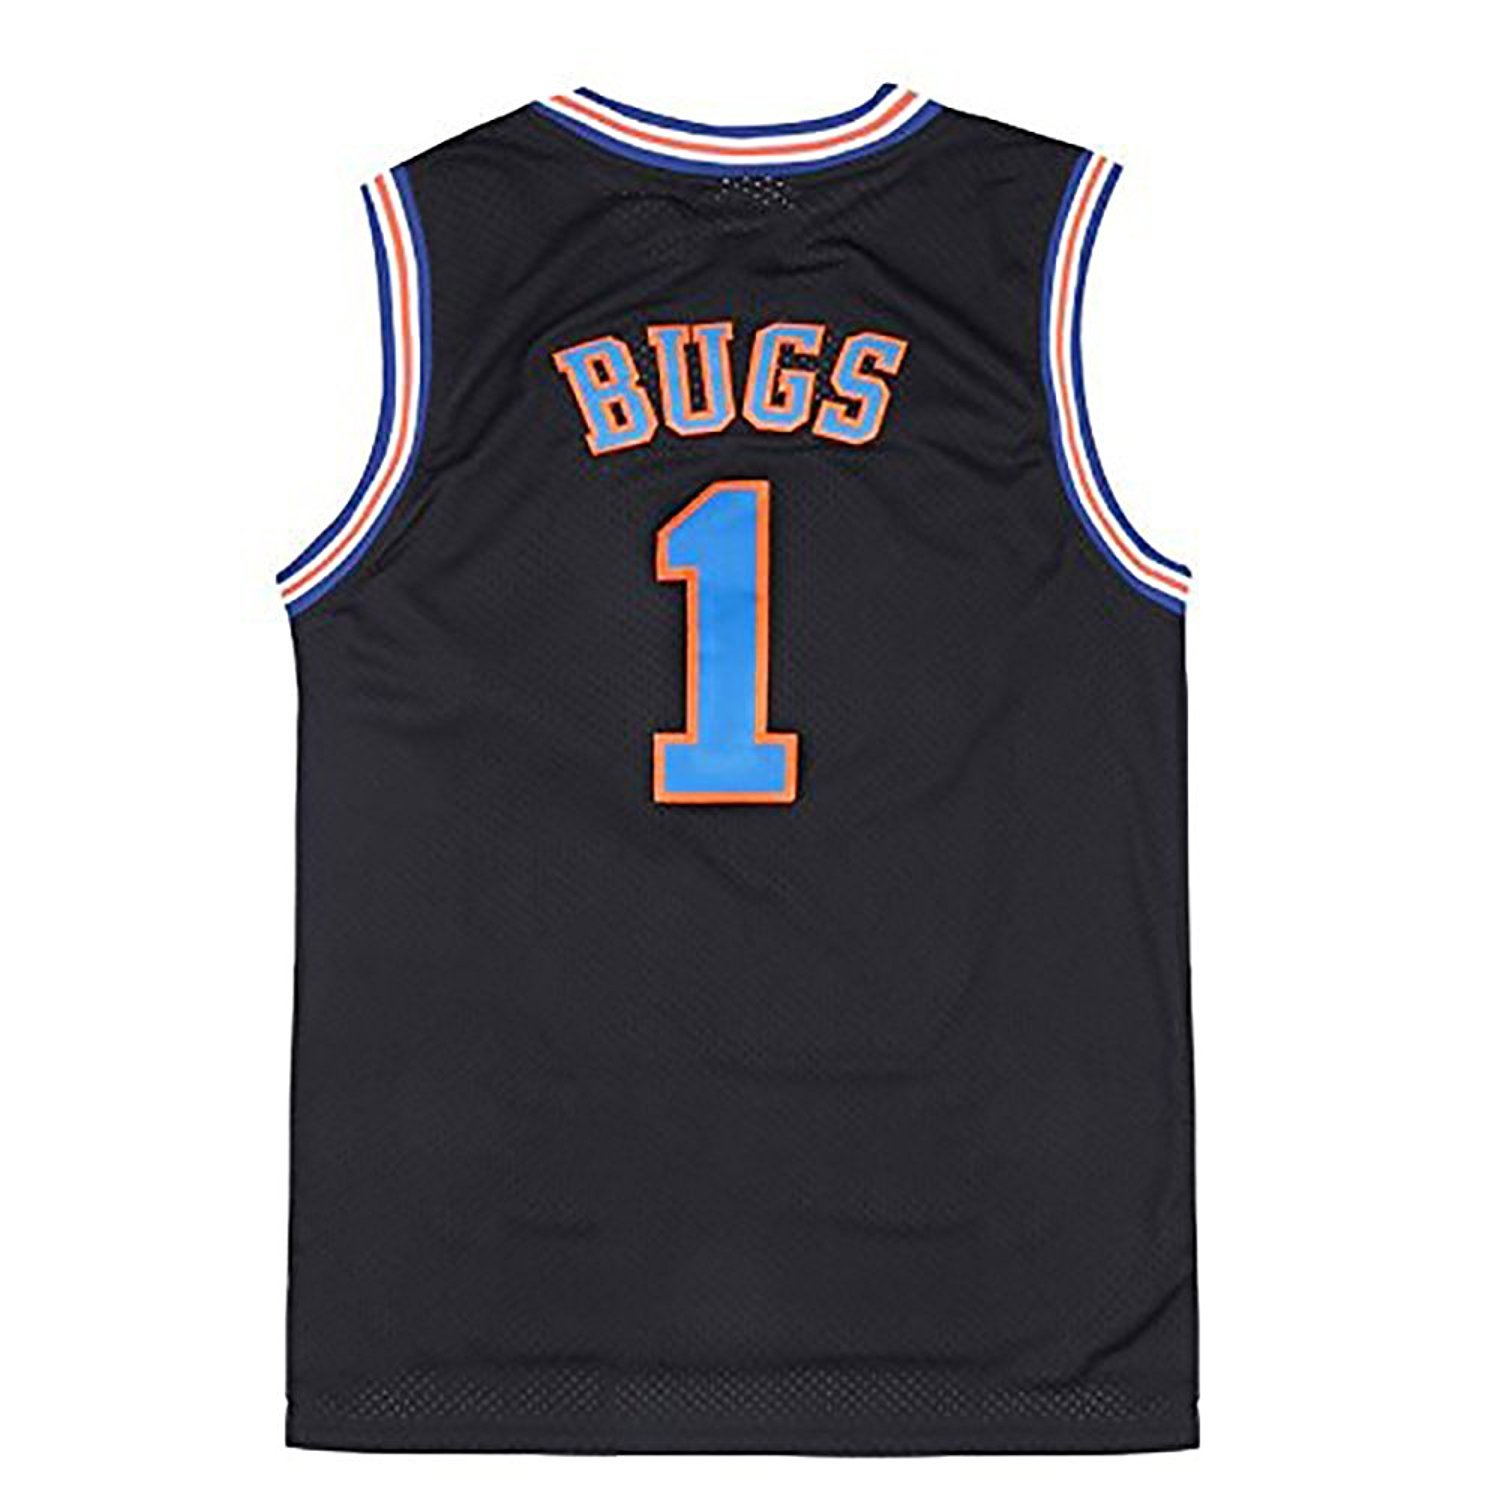 c8a812deead7 Mens Basketball Jersey 90S Moive Bugs Bunny  1 Space Jam Shirt  Amazon.ca   Sports   Outdoors